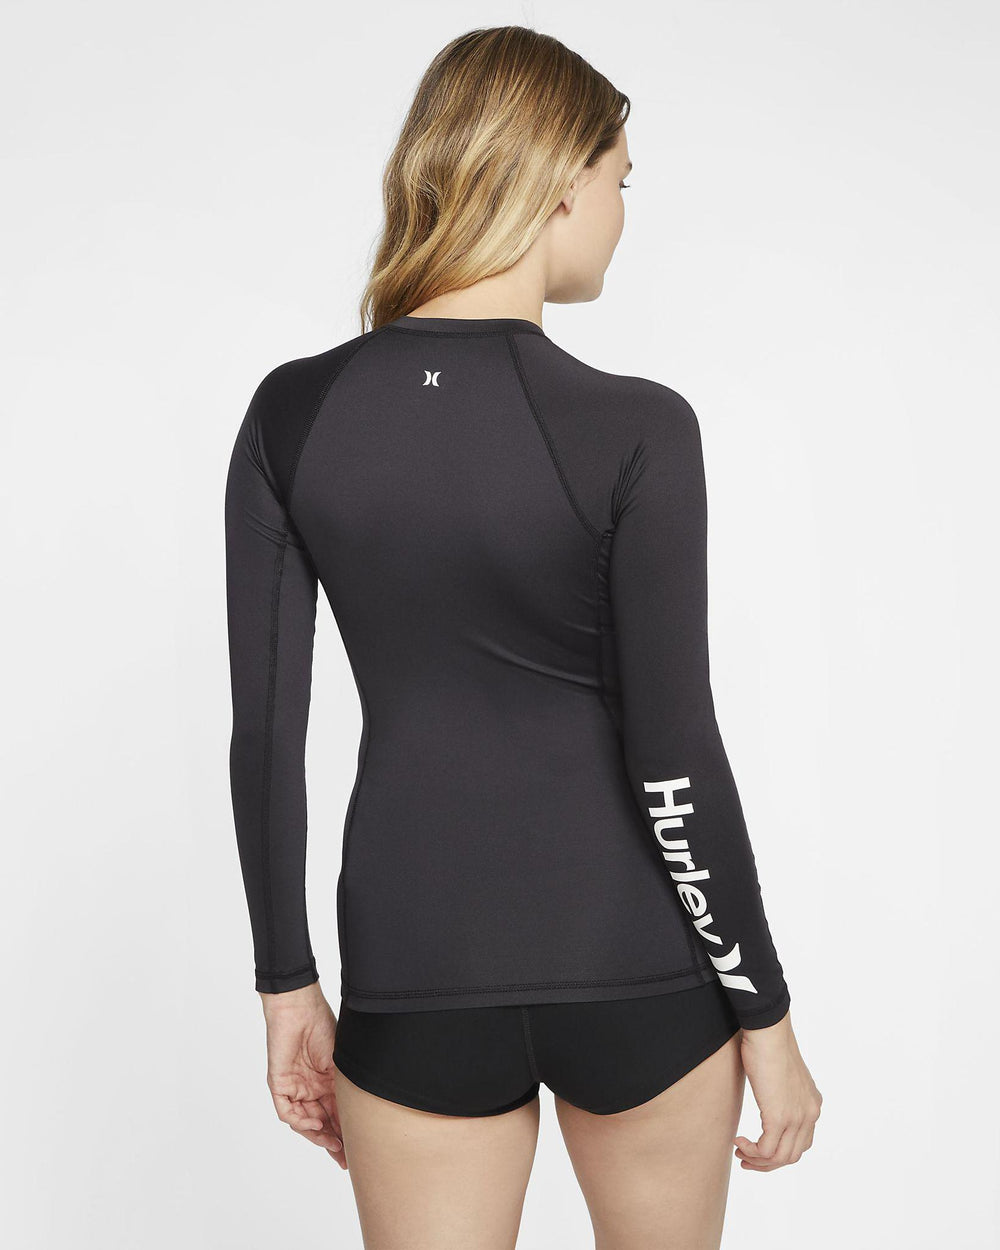 Women's Long-Sleeve Rashguard Hurley One And Only